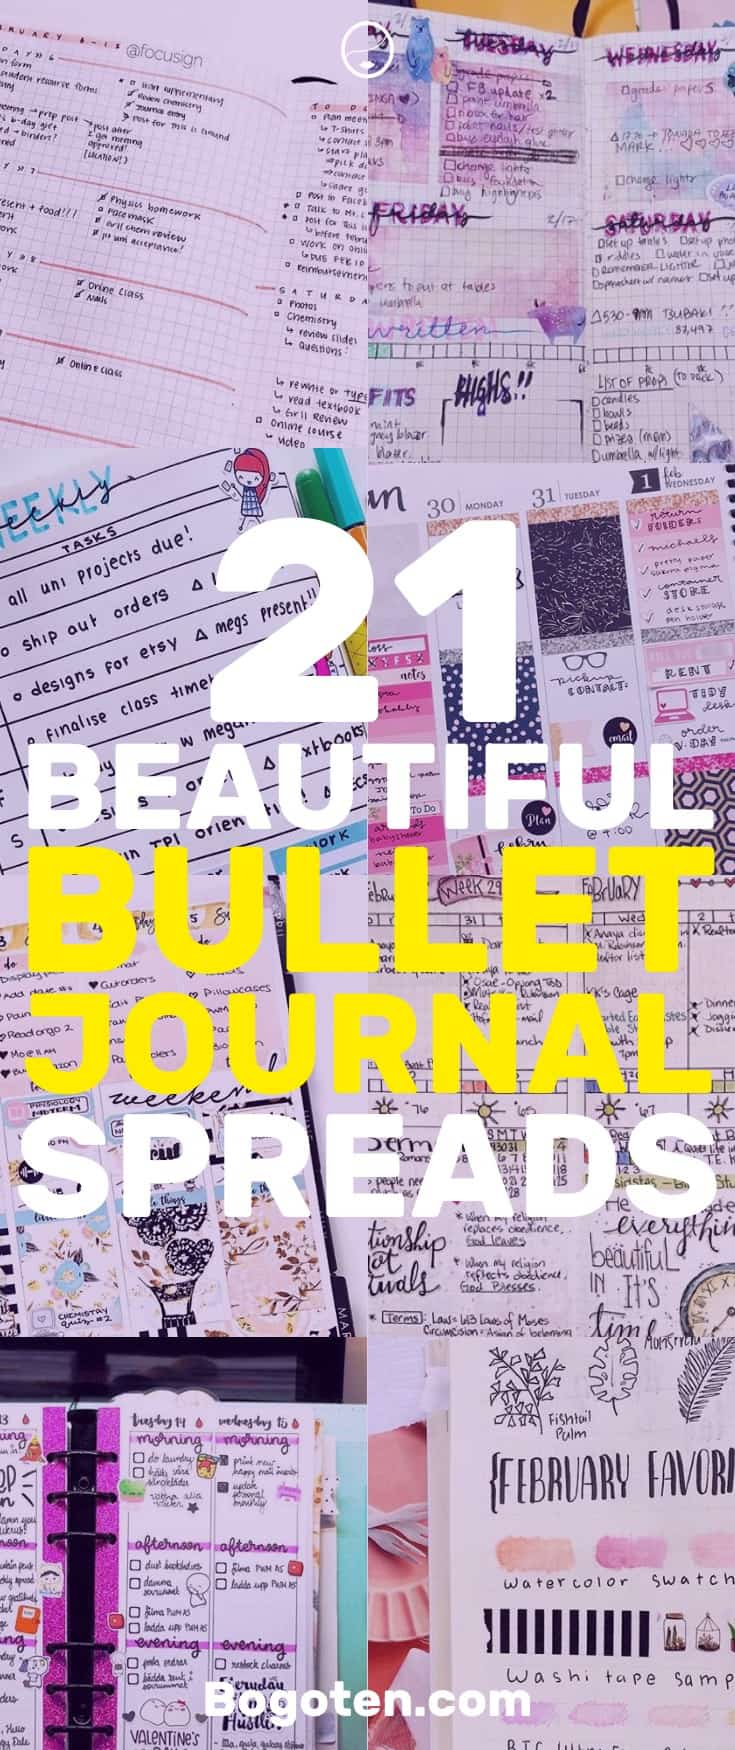 Here are 25 beautiful bullet journal spreads that you can use for inspiration.